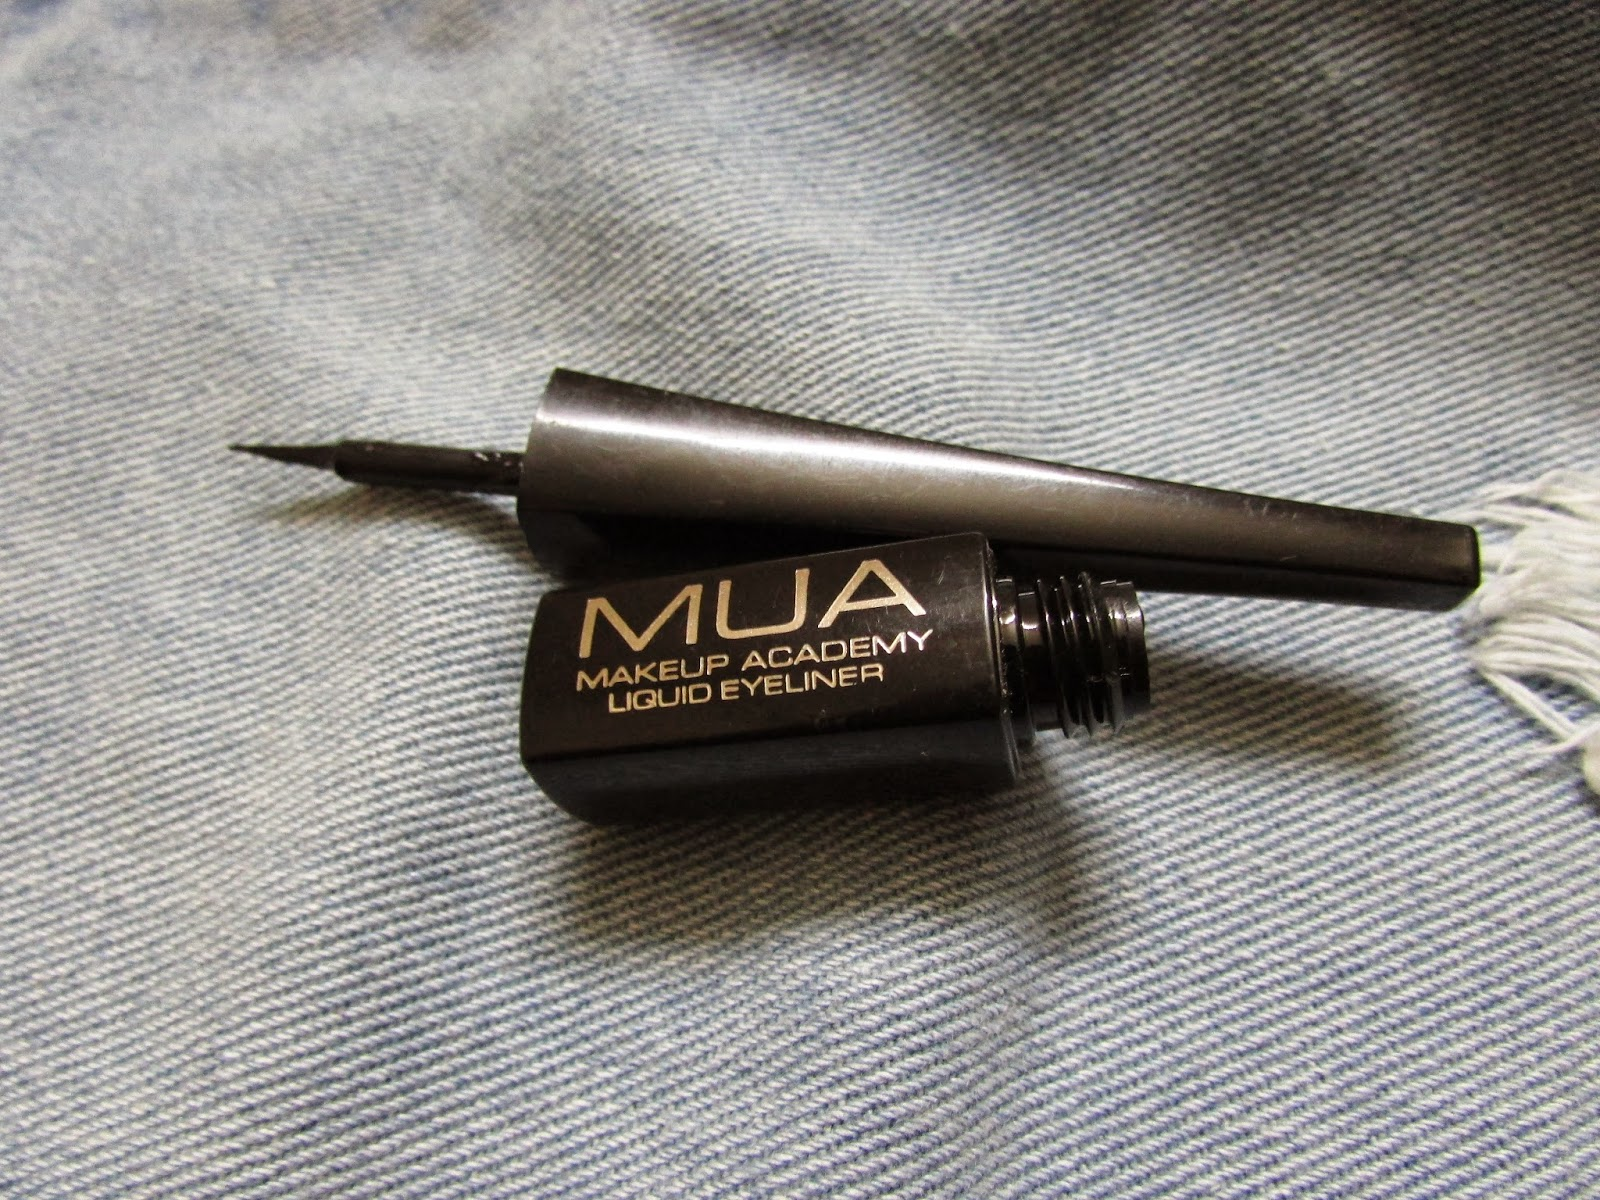 MUA Liquid Eyeliner, MUA Liquid Eyeliner review, MUA Liquid Eyeliner price, MUA Liquid Eyeliner online, MUA Liquid Eyeliner india, eyes, worst eyeliner,affordable makeup, affordable makeup haul, affordable makeup makeup academy haul, haul, huge MUA haul, makeup, makeup academy, mua, MUA makeup india, MUA makeup online, beauty , fashion,beauty and fashion,beauty blog, fashion blog , indian beauty blog,indian fashion blog, beauty and fashion blog, indian beauty and fashion blog, indian bloggers, indian beauty bloggers, indian fashion bloggers,indian bloggers online, top 10 indian bloggers, top indian bloggers,top 10 fashion bloggers, indian bloggers on blogspot,home remedies, how to